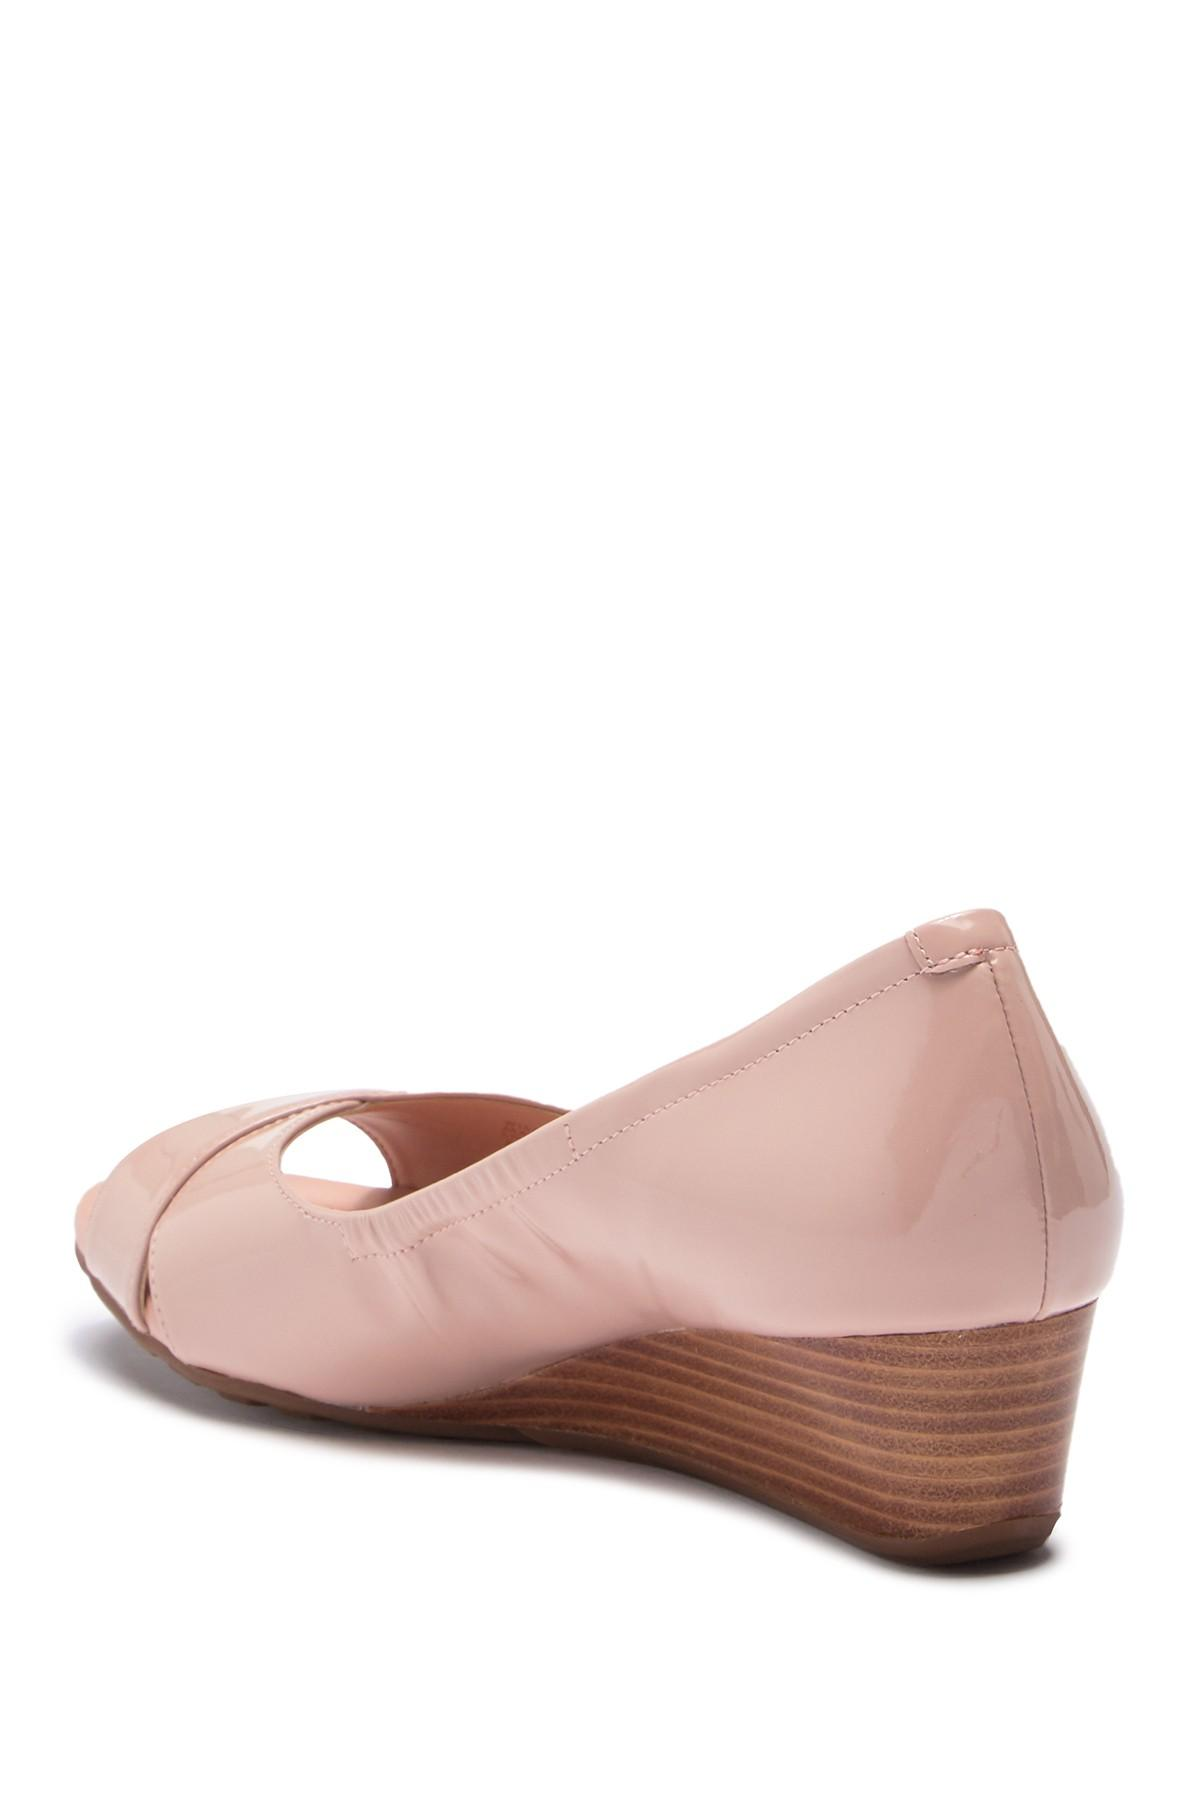 Clarks Womens Vendra Bloom Wedge | Shoes $0 $100 : 0 100